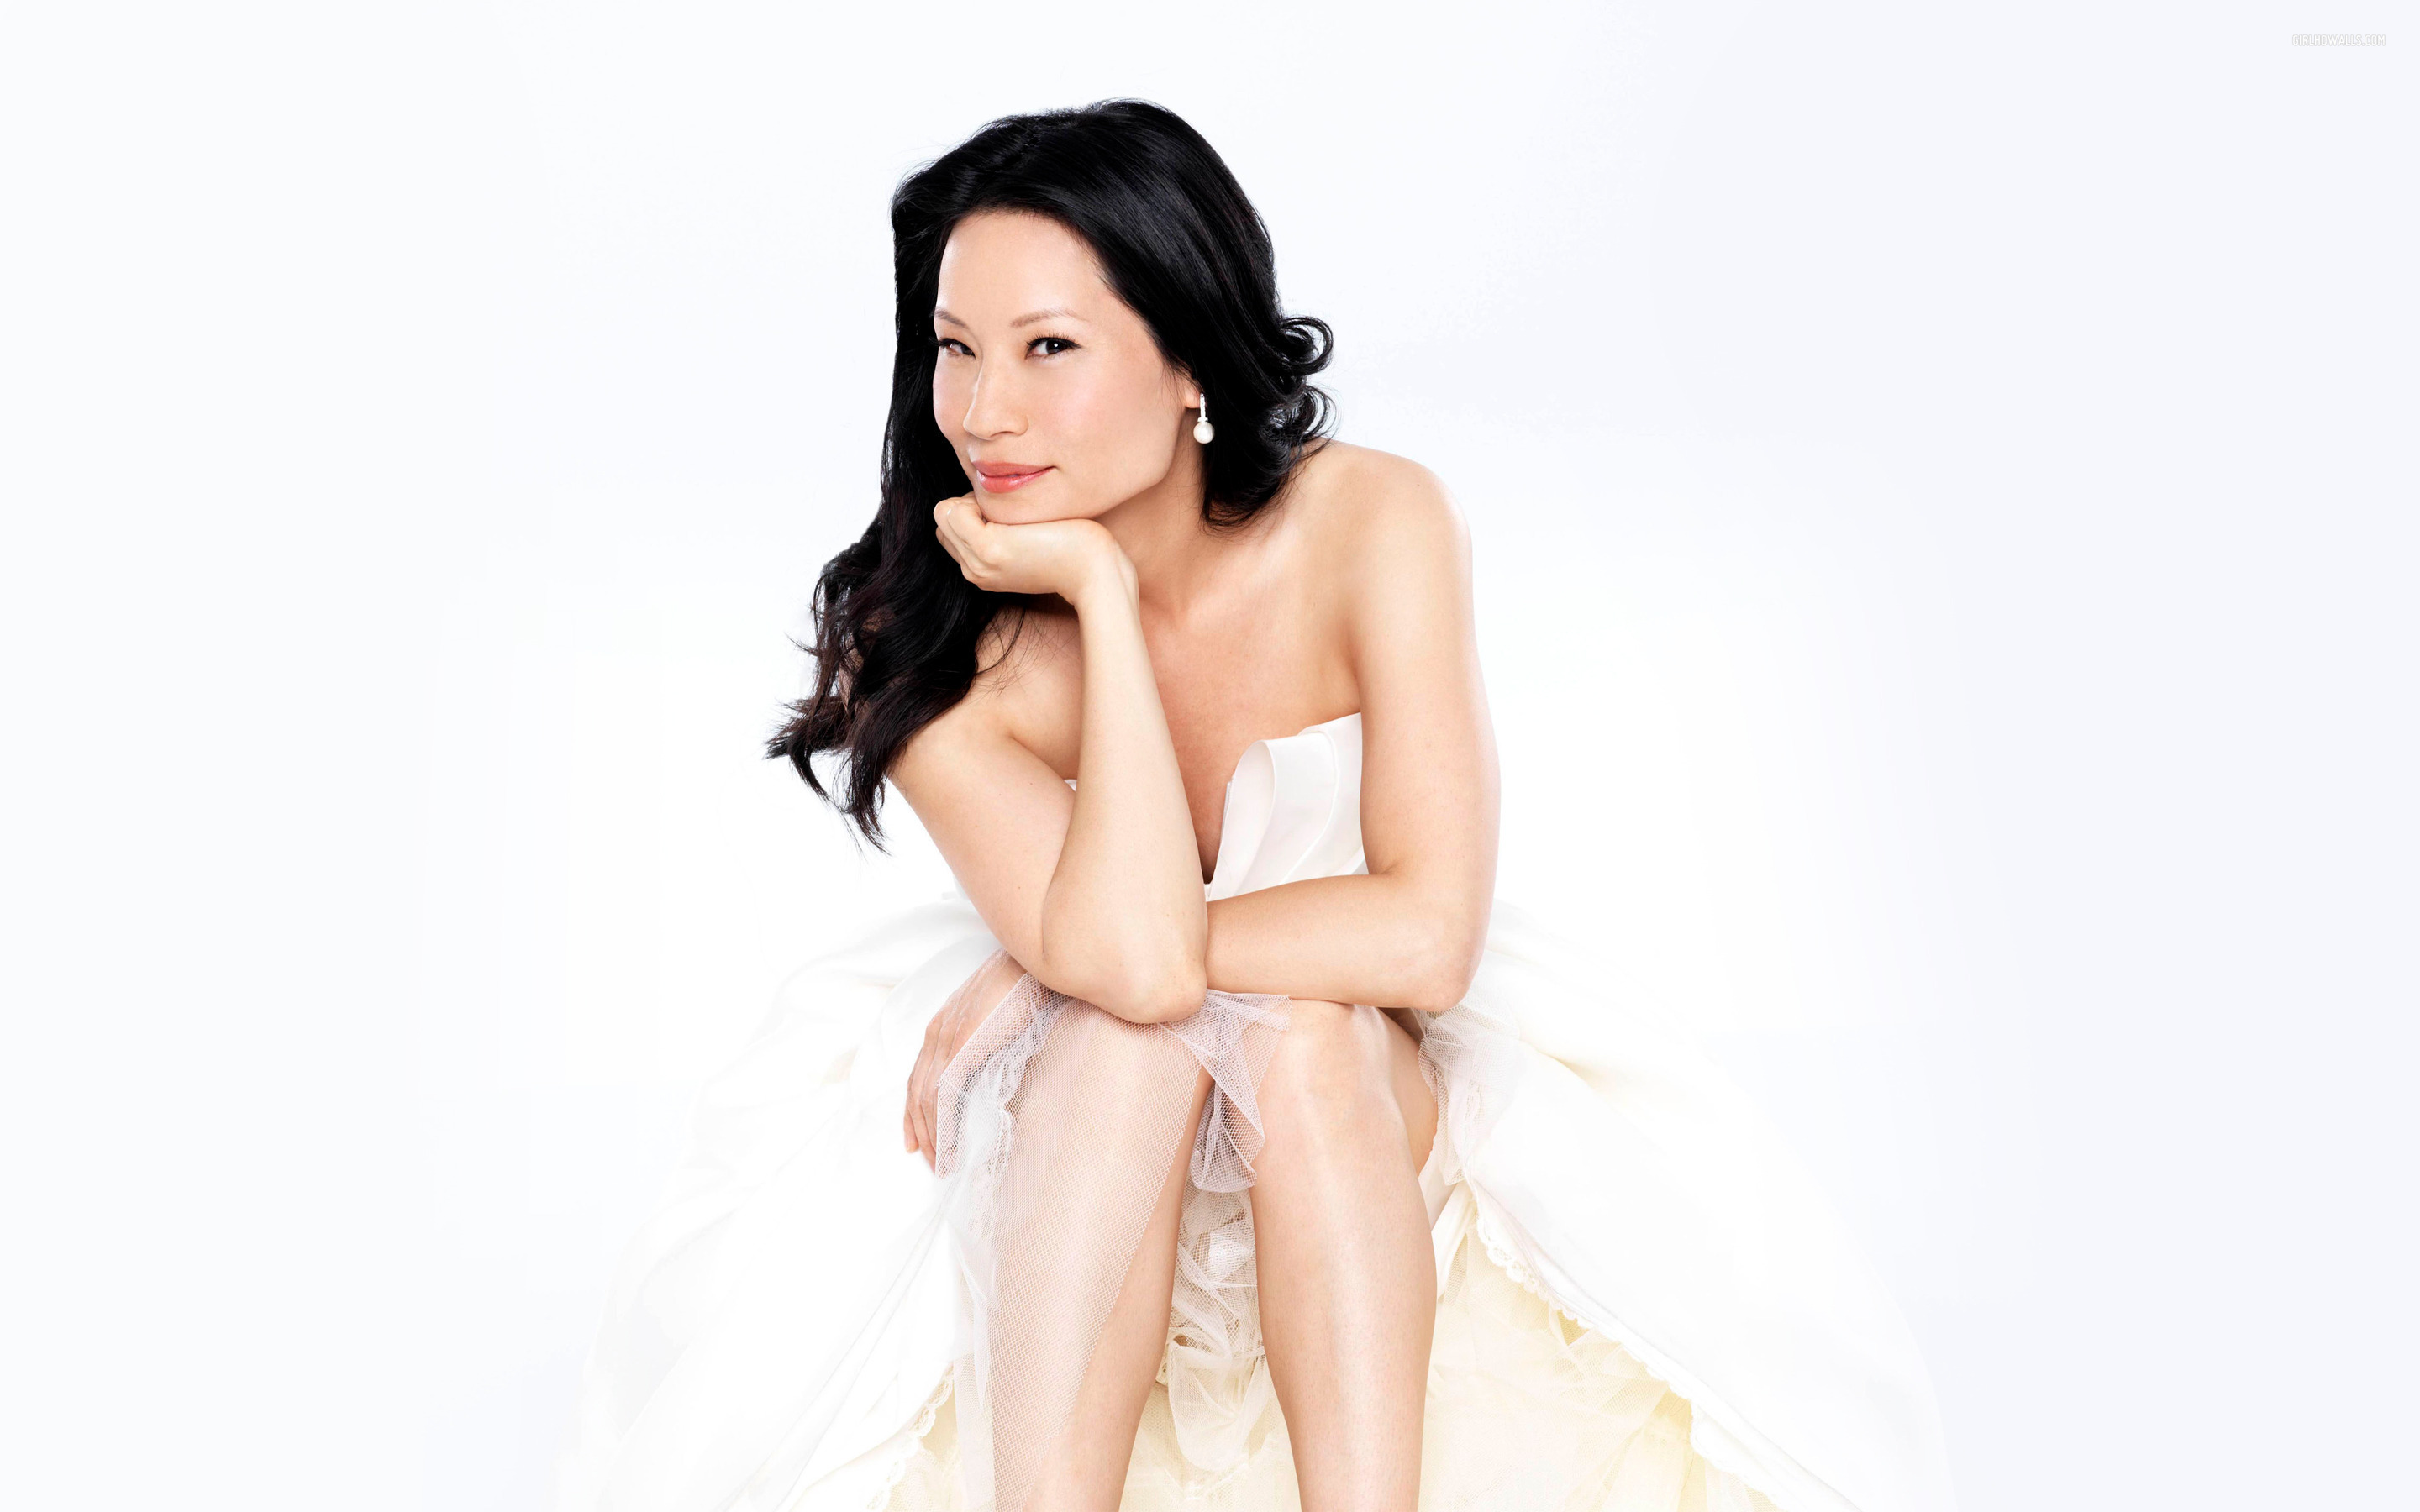 lucy liu free wallpaper - photo #10